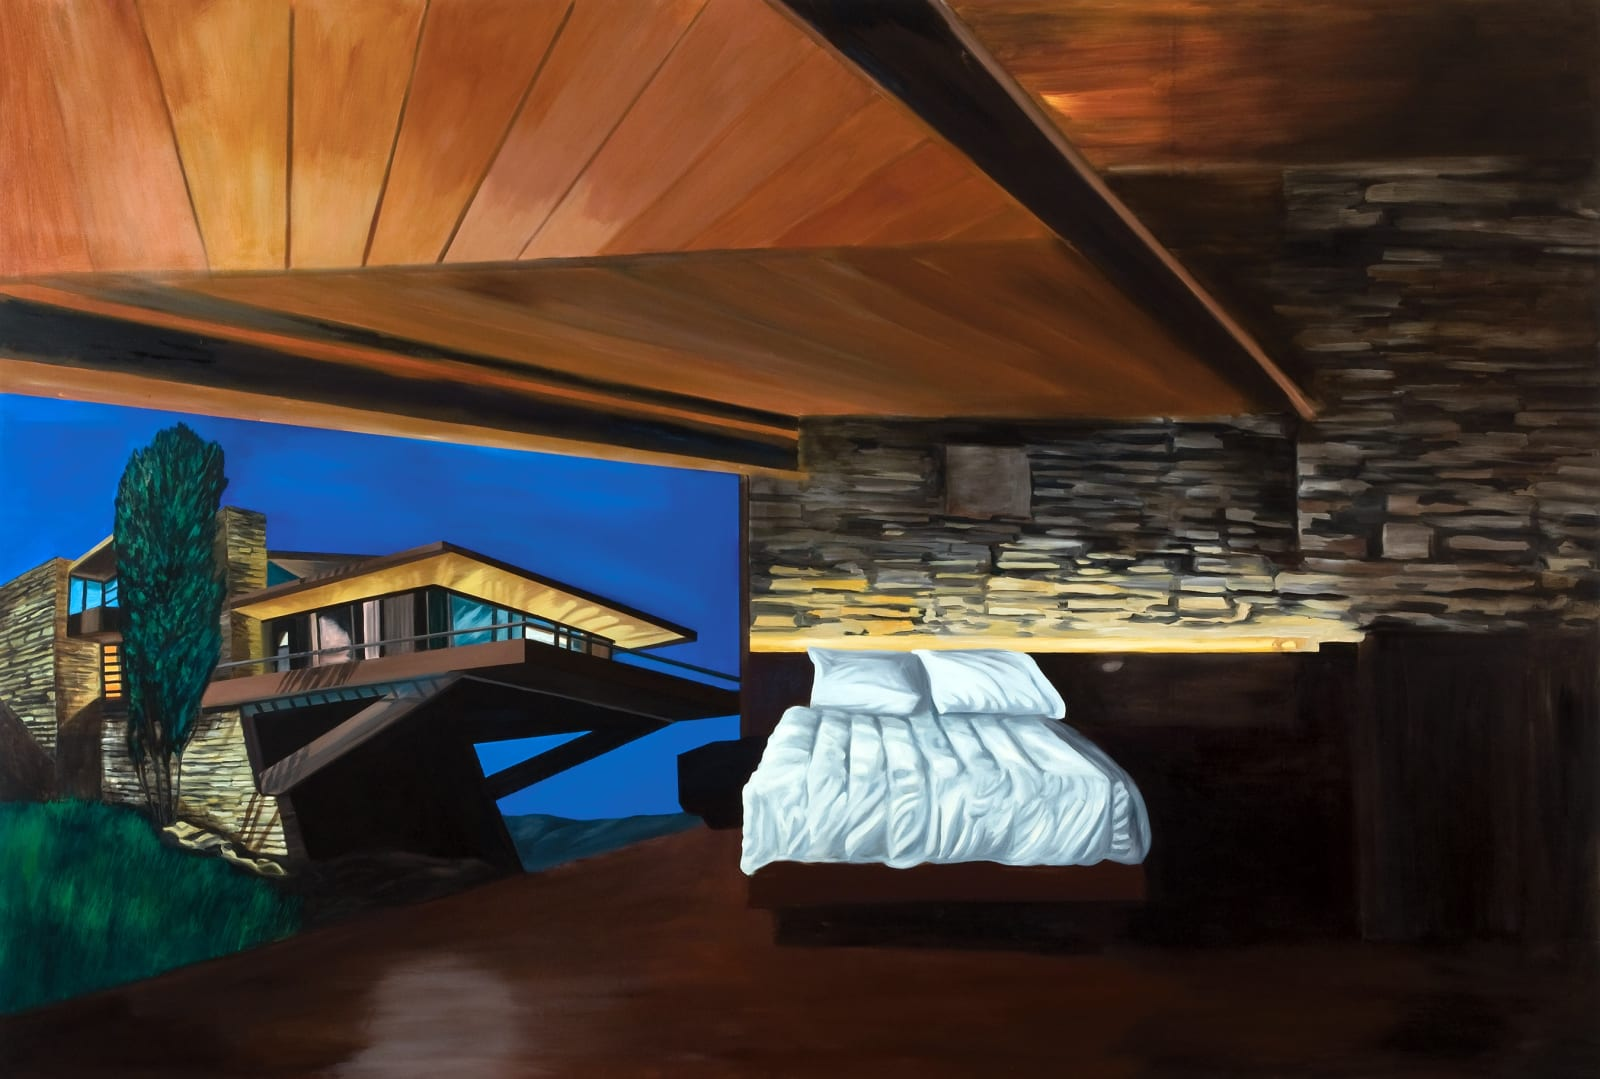 Lloyd Wright's Dream (painted whilst listening to Nevermind by Nirvana), oil on canvas, 256 x 378 cm, 2008